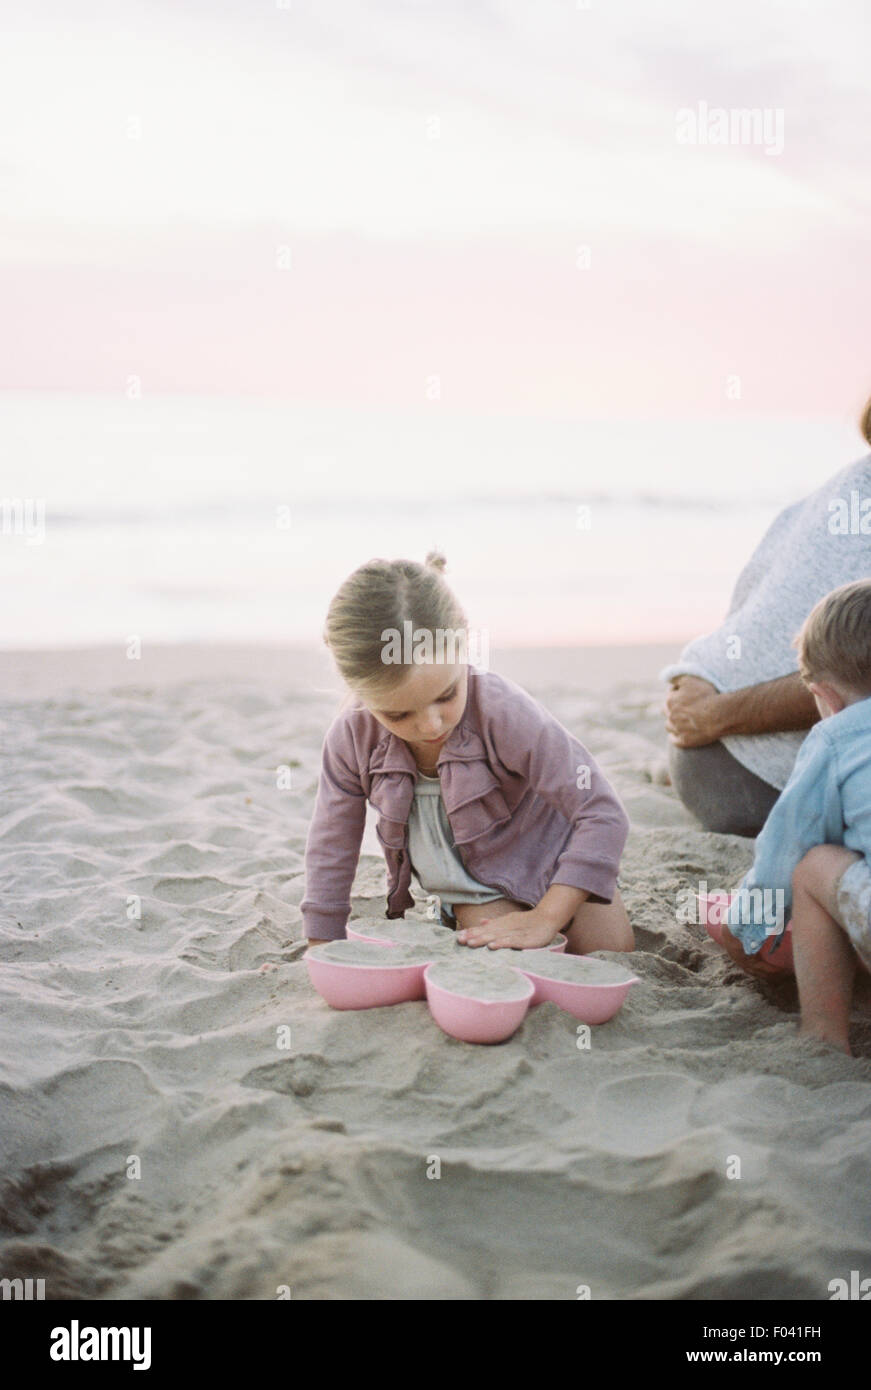 Young boy and girl playing in the sand on a beach beside an adult couple. - Stock Image